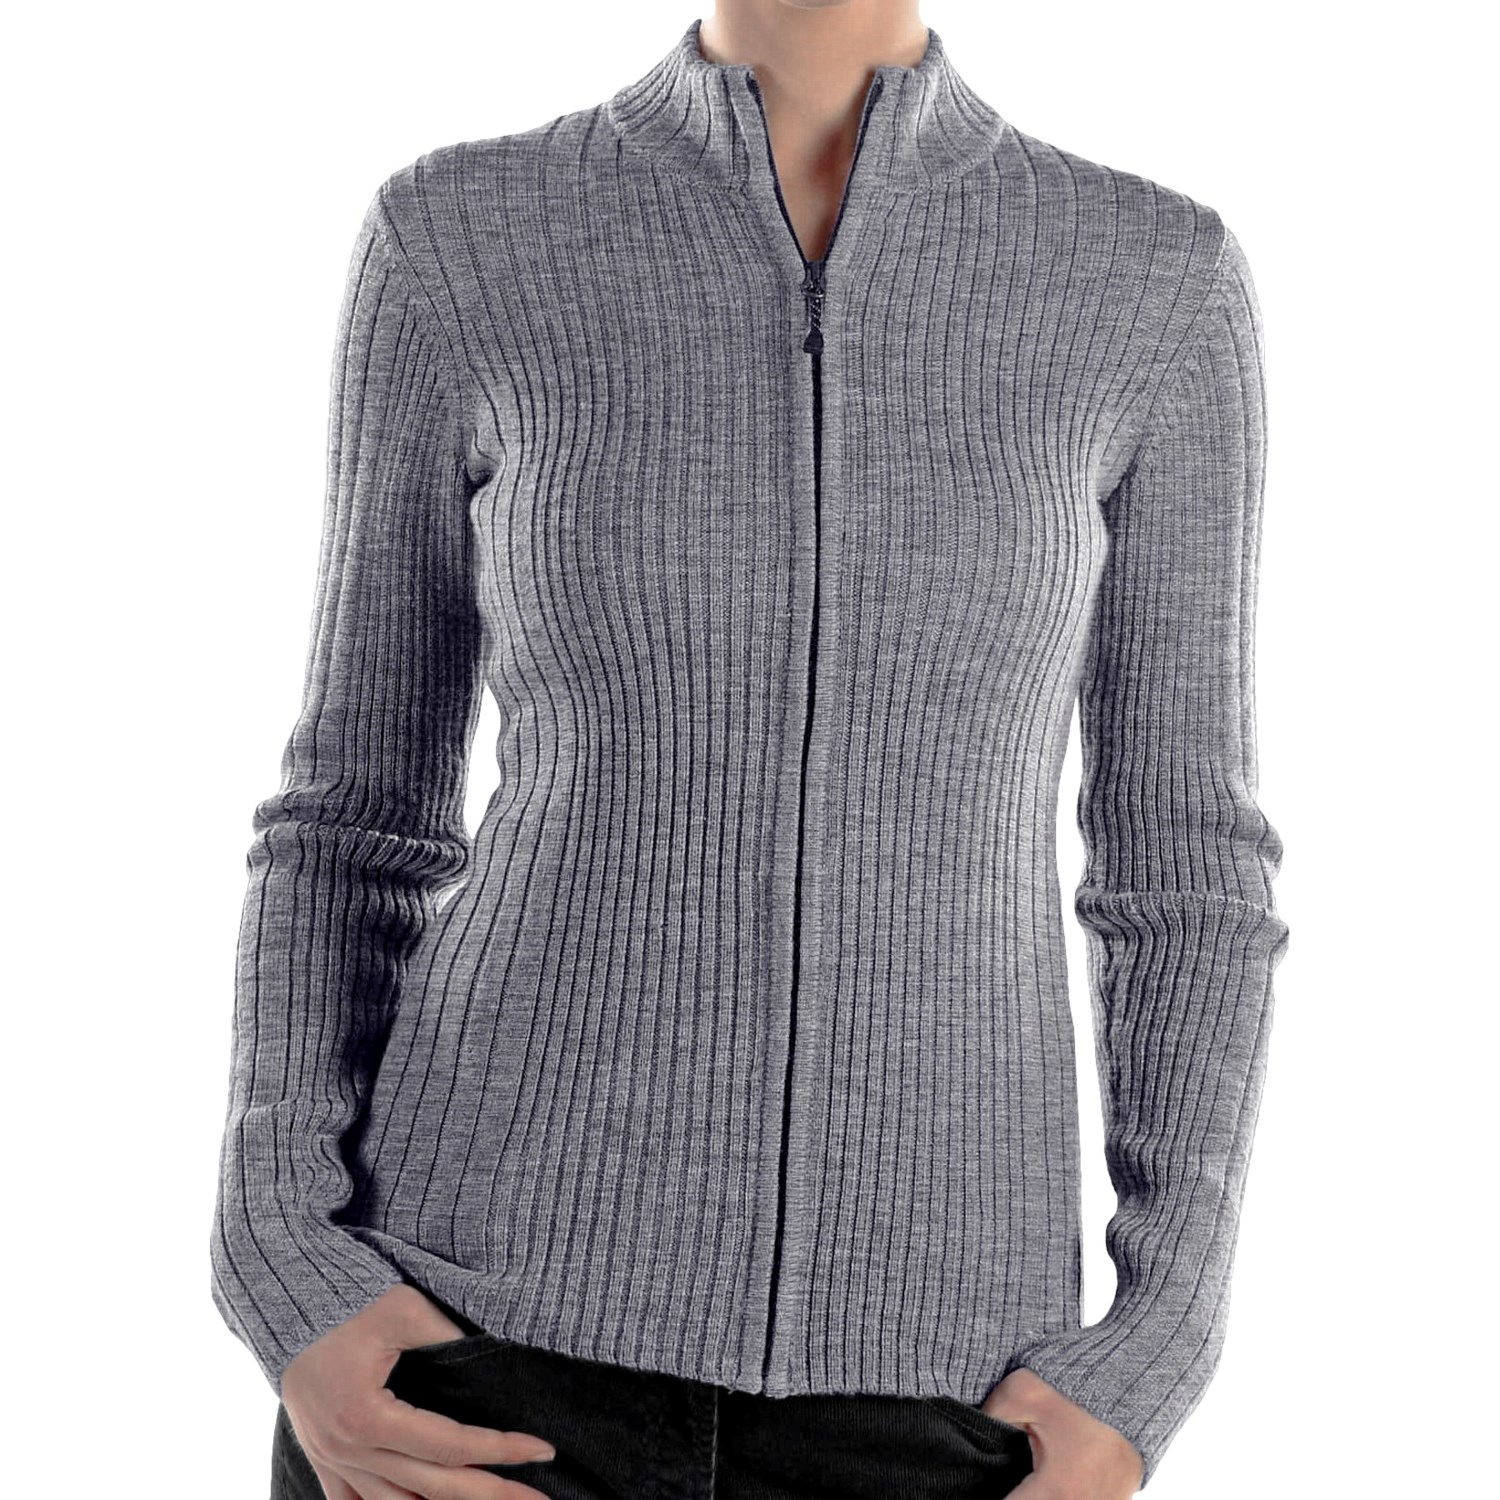 Wool Sweater Images - Reverse Search